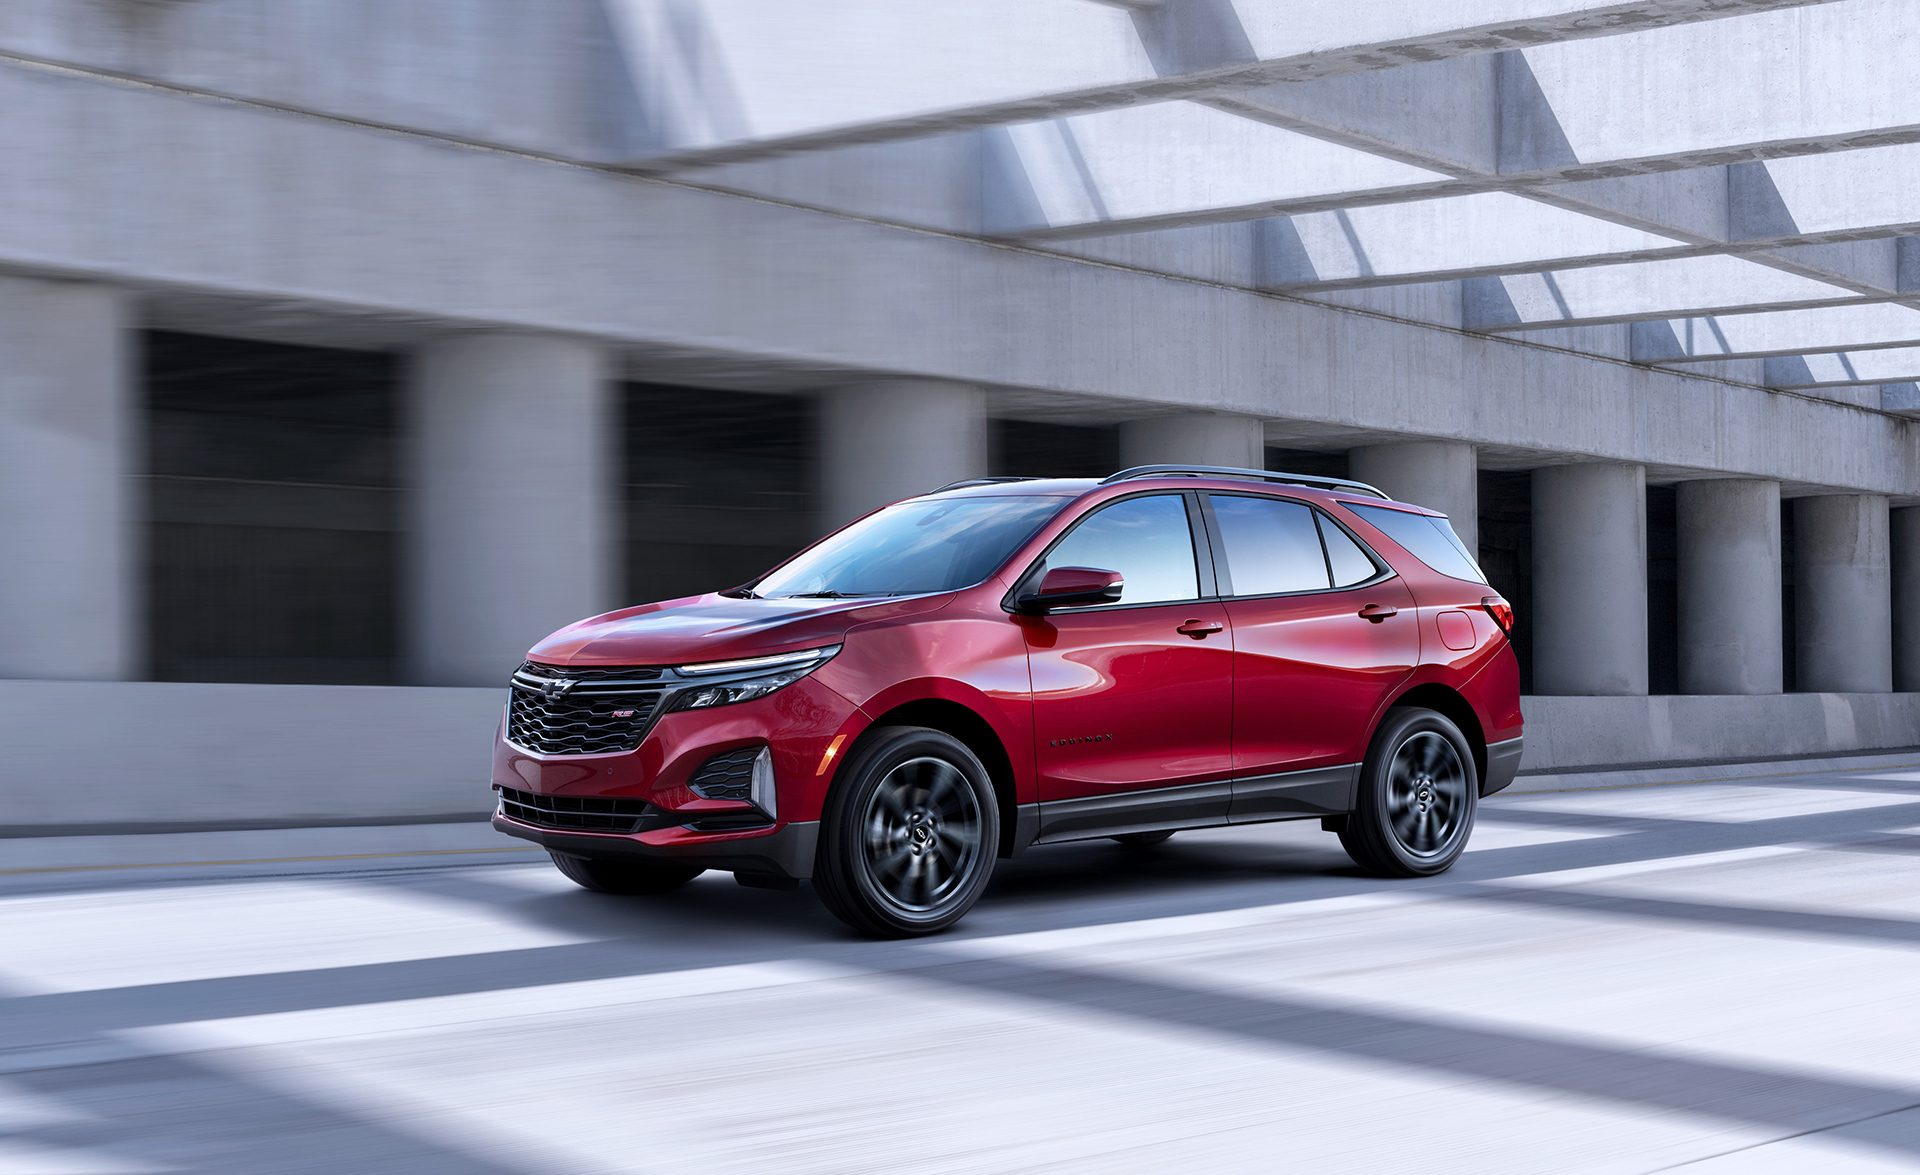 2021 Chevrolet Equinox Blazes A Familiar Styling Path 2021 Chevrolet Equinox Lt Accessories, Awd Reviews, Features